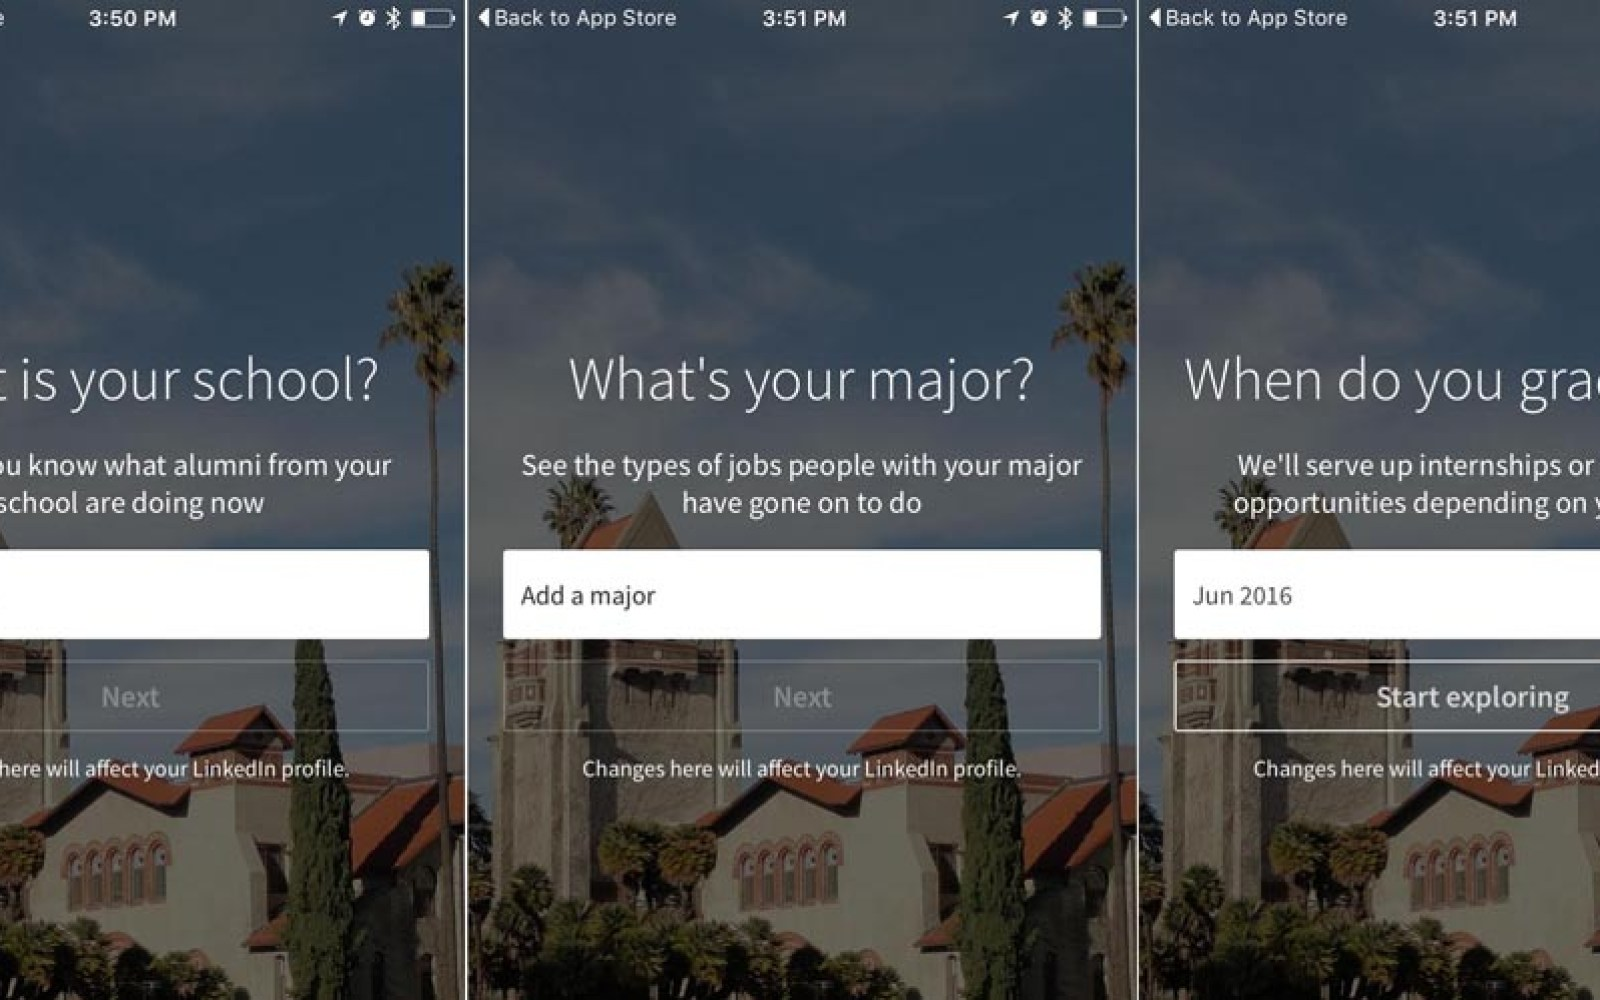 LinkedIn today launching Tinder-style swiping Android app to help U.S. students find jobs